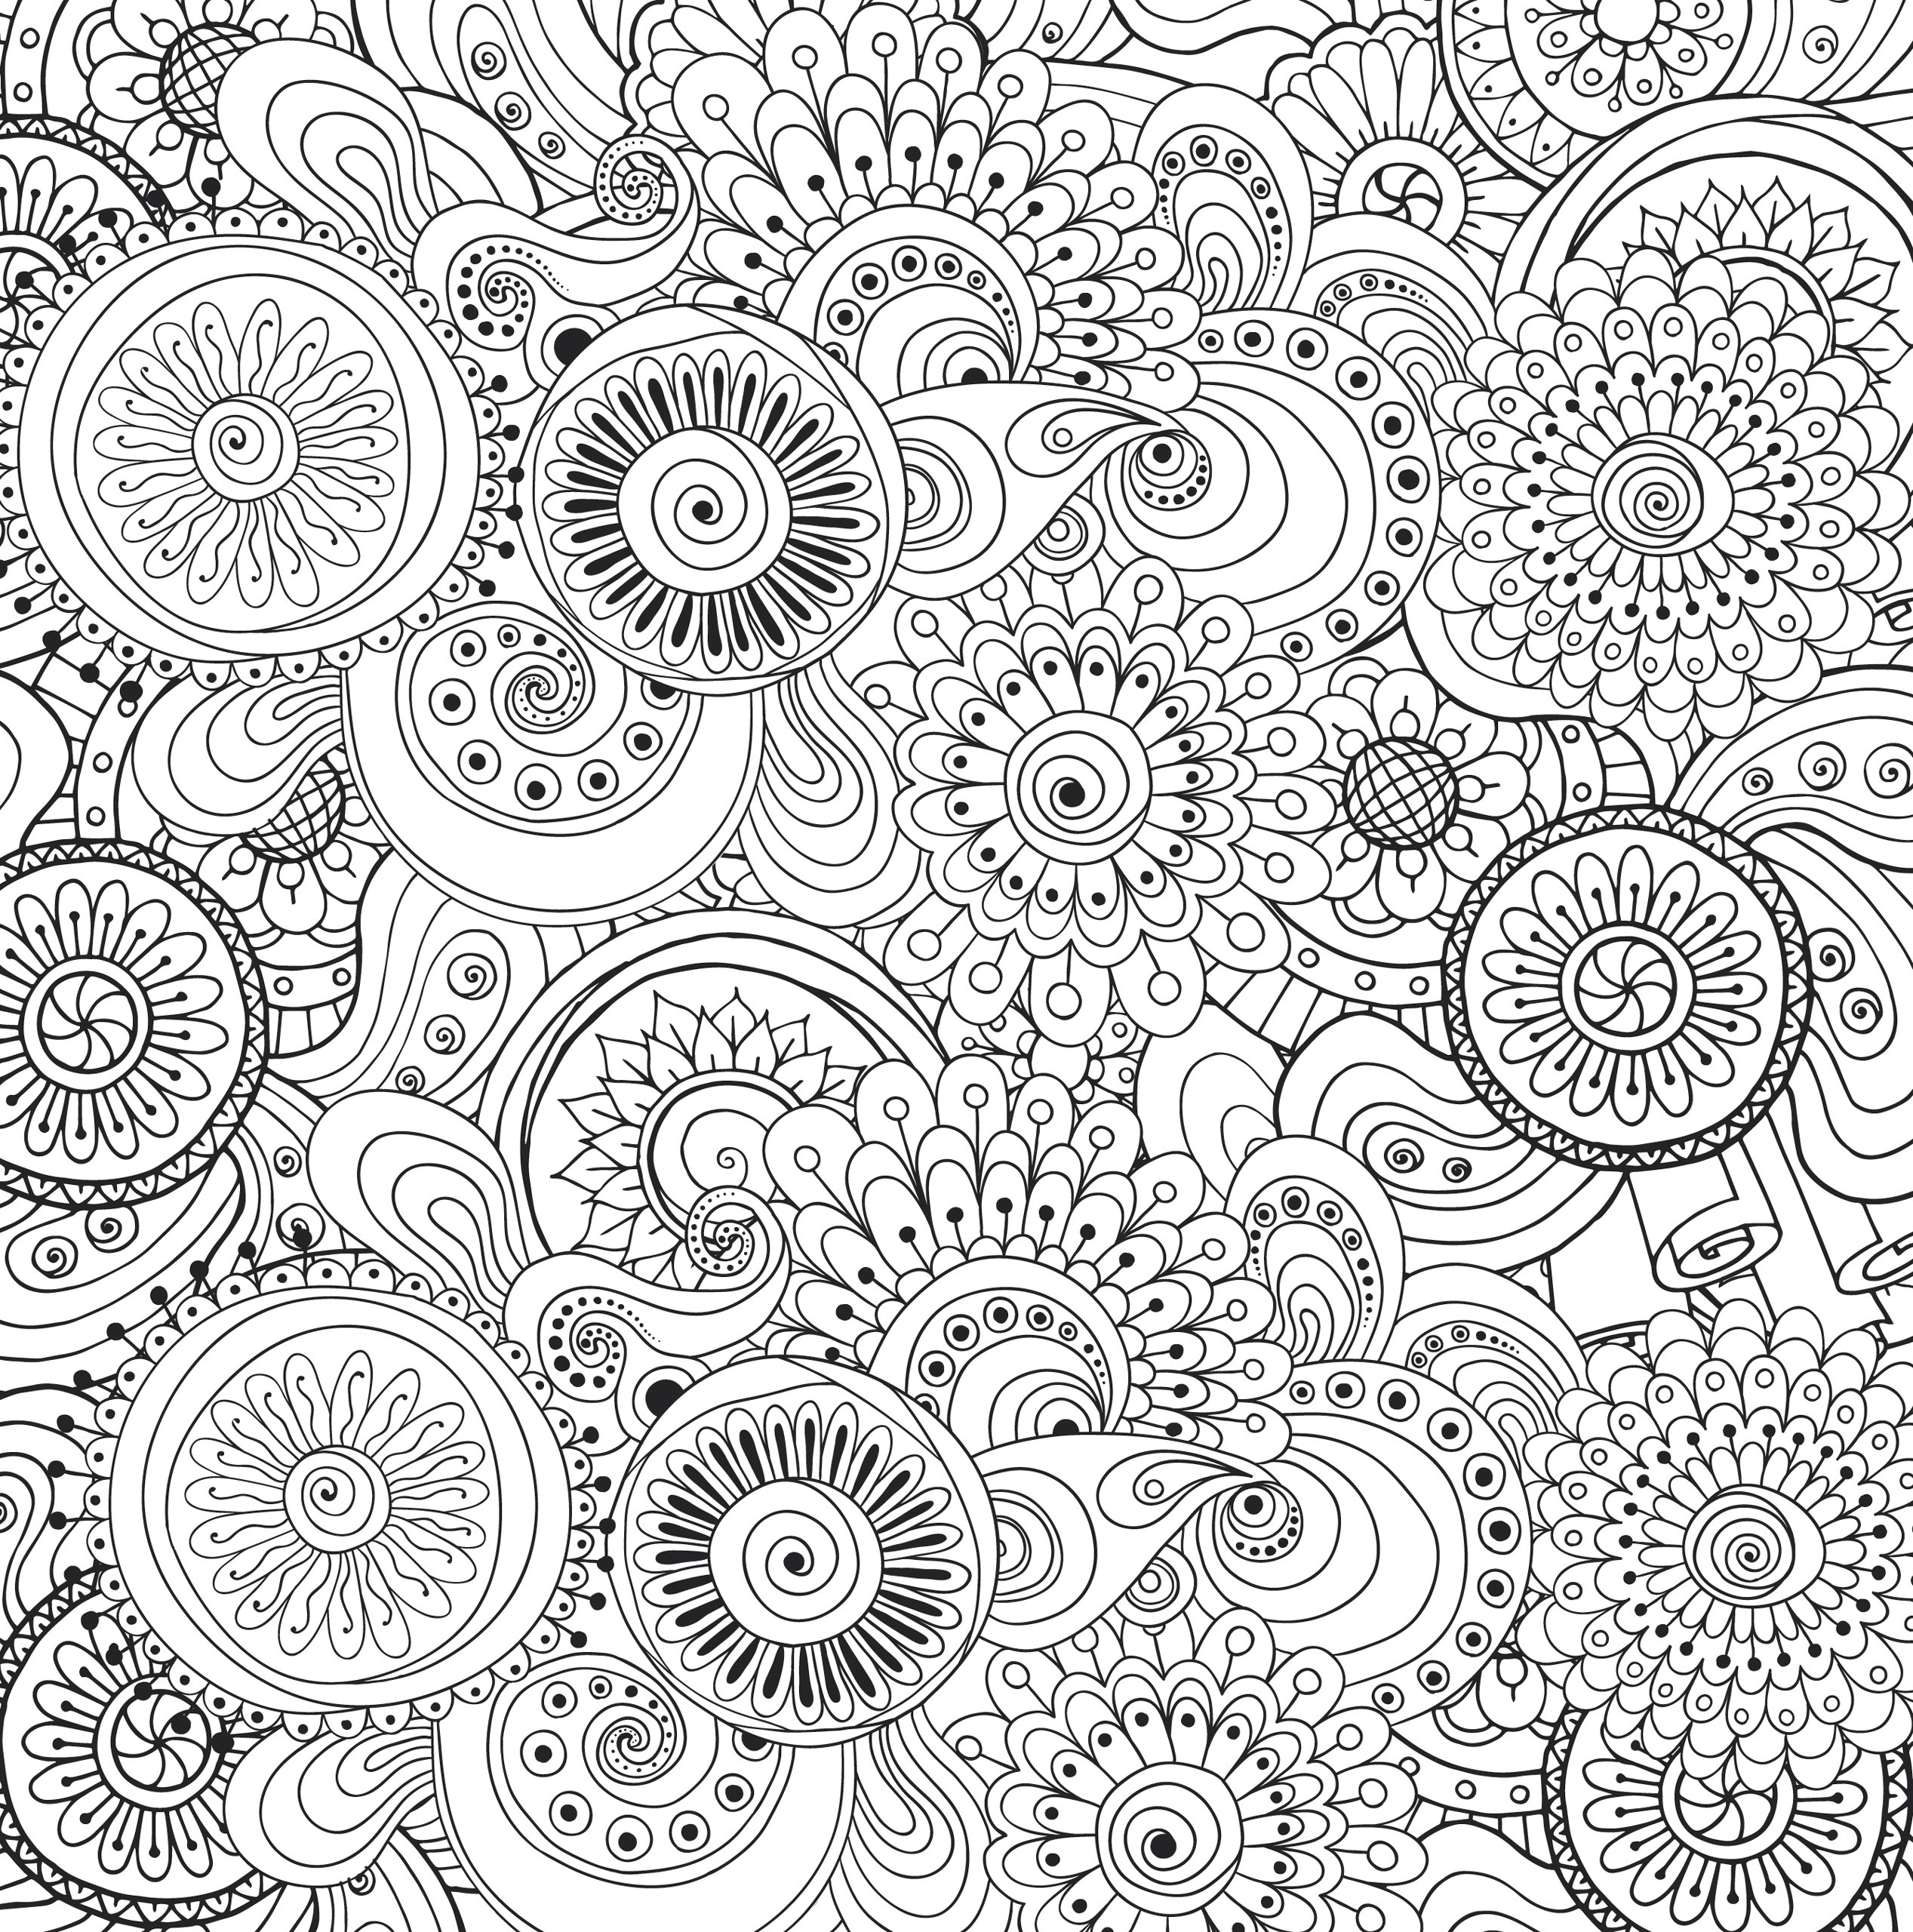 Stress relief coloring sheets free - Amazon Com Peaceful Paisleys Adult Coloring Book 31 Stress Relieving Designs Studio 9781441320025 Peter Pauper Press Books